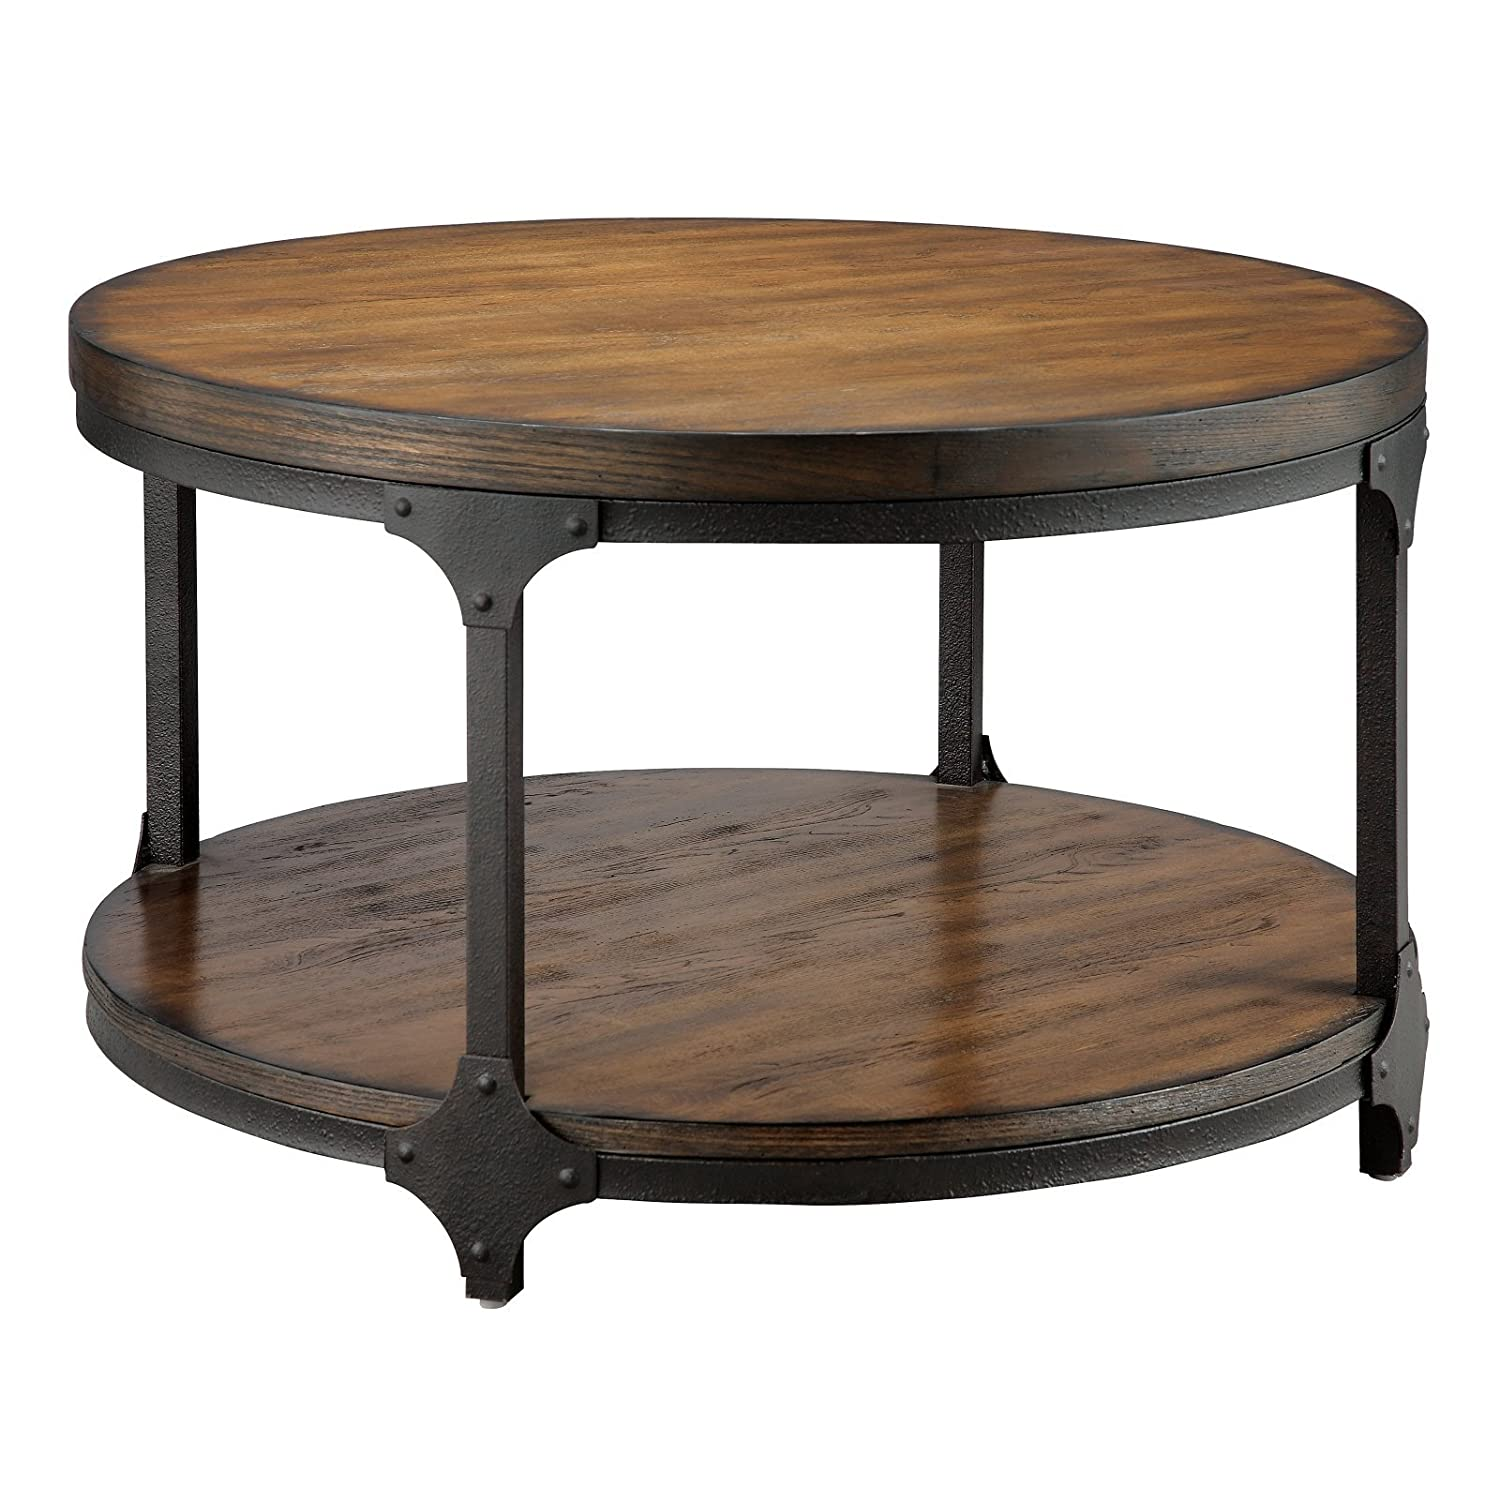 Rustic industrial style round wood metal coffee cocktail table Rustic round coffee table